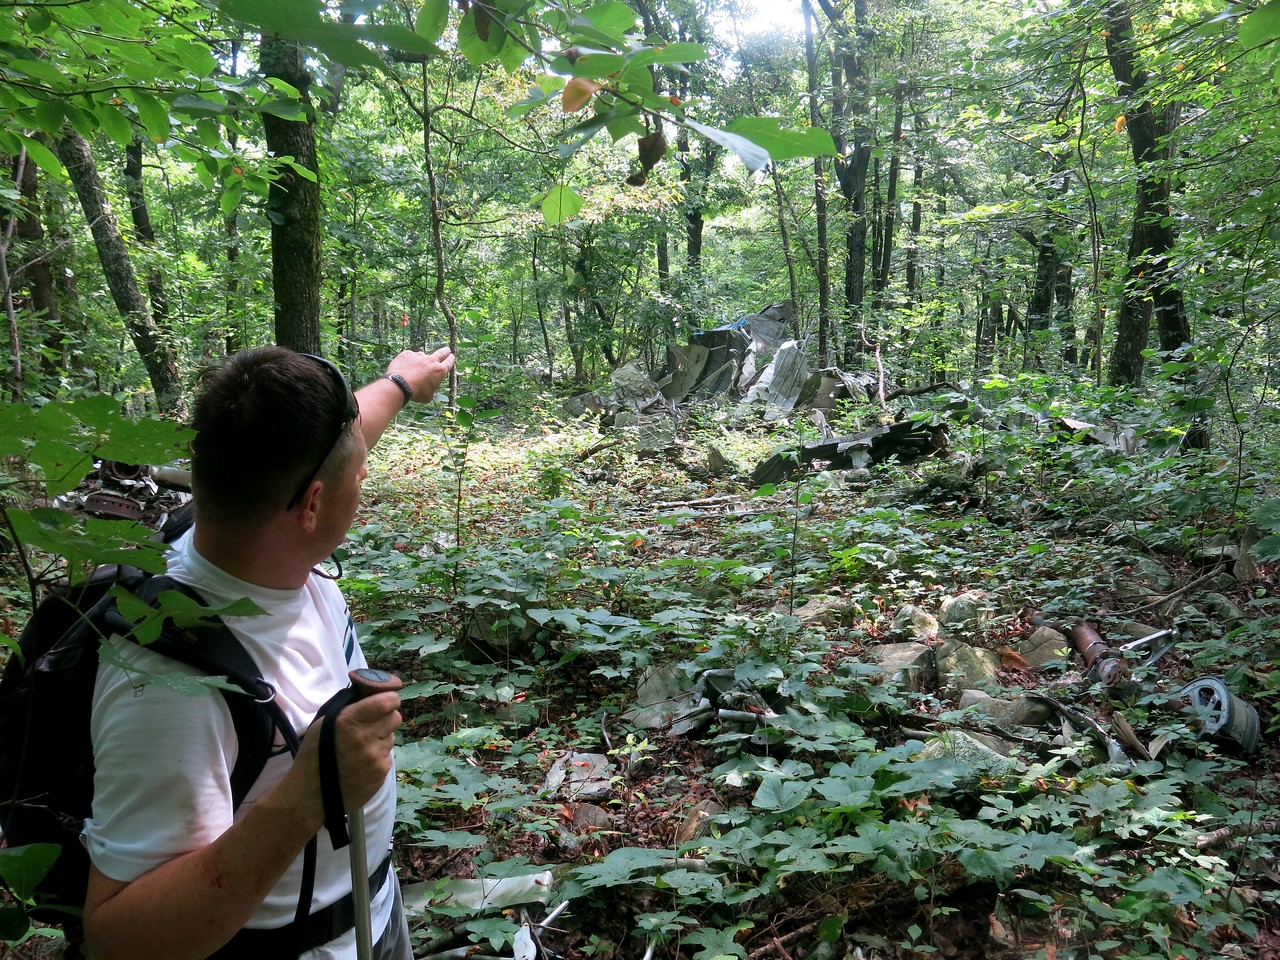 Jeff Wilkinson points to the main concentration of wreckage debris from Flight 655.